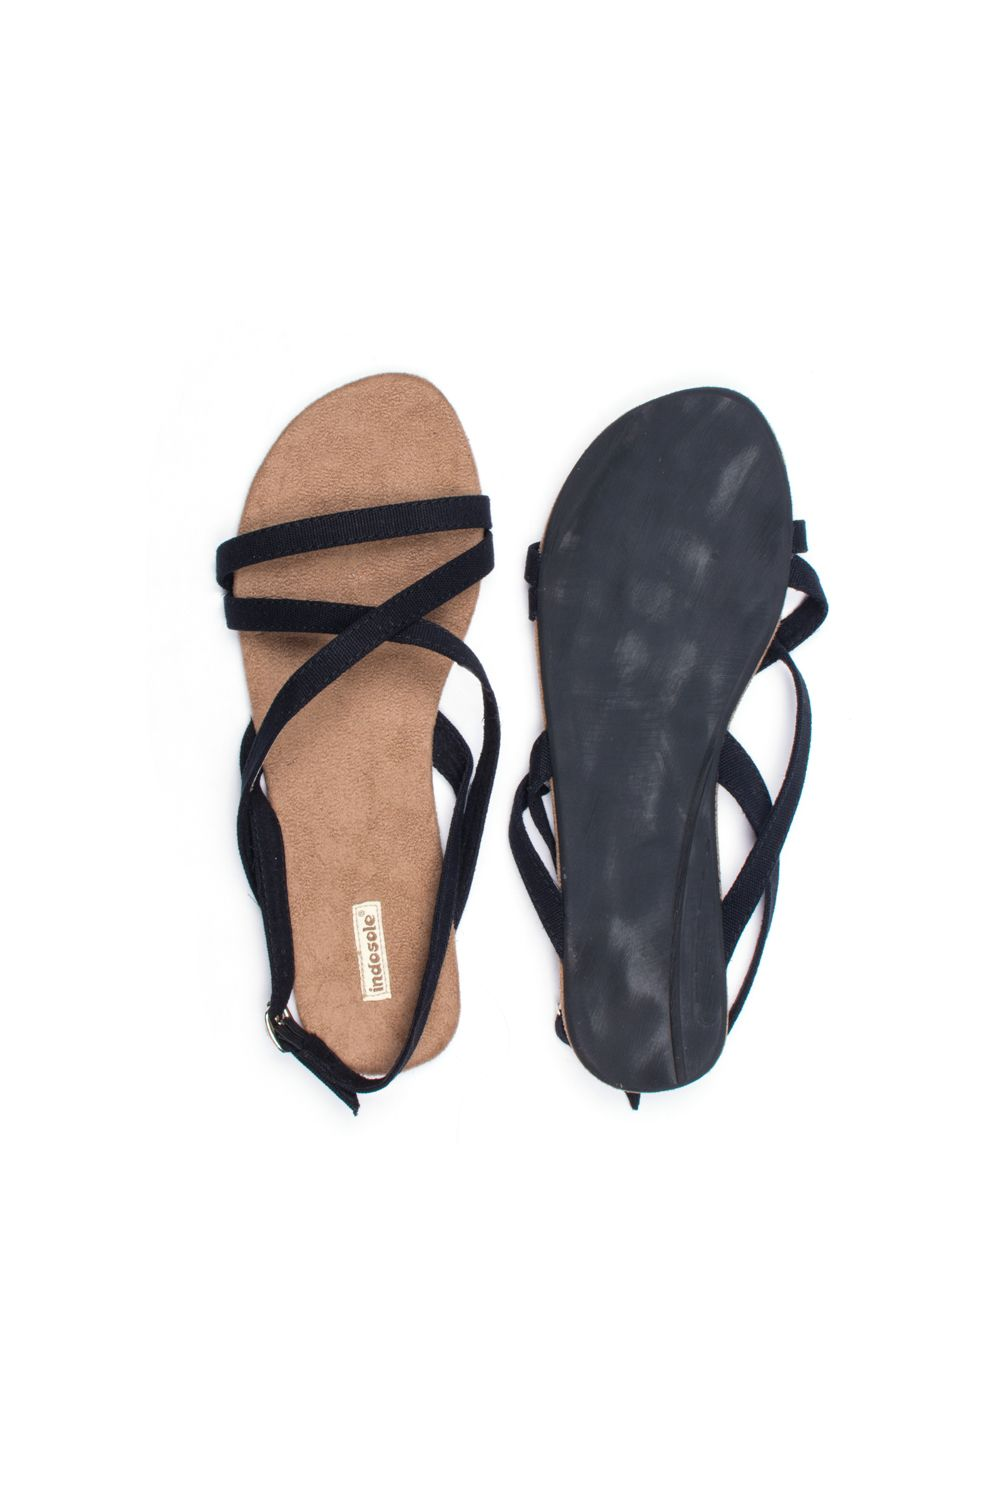 0e276279a The handmade Indosole Biku sandal is a unique combination of function and  style. Strappy and